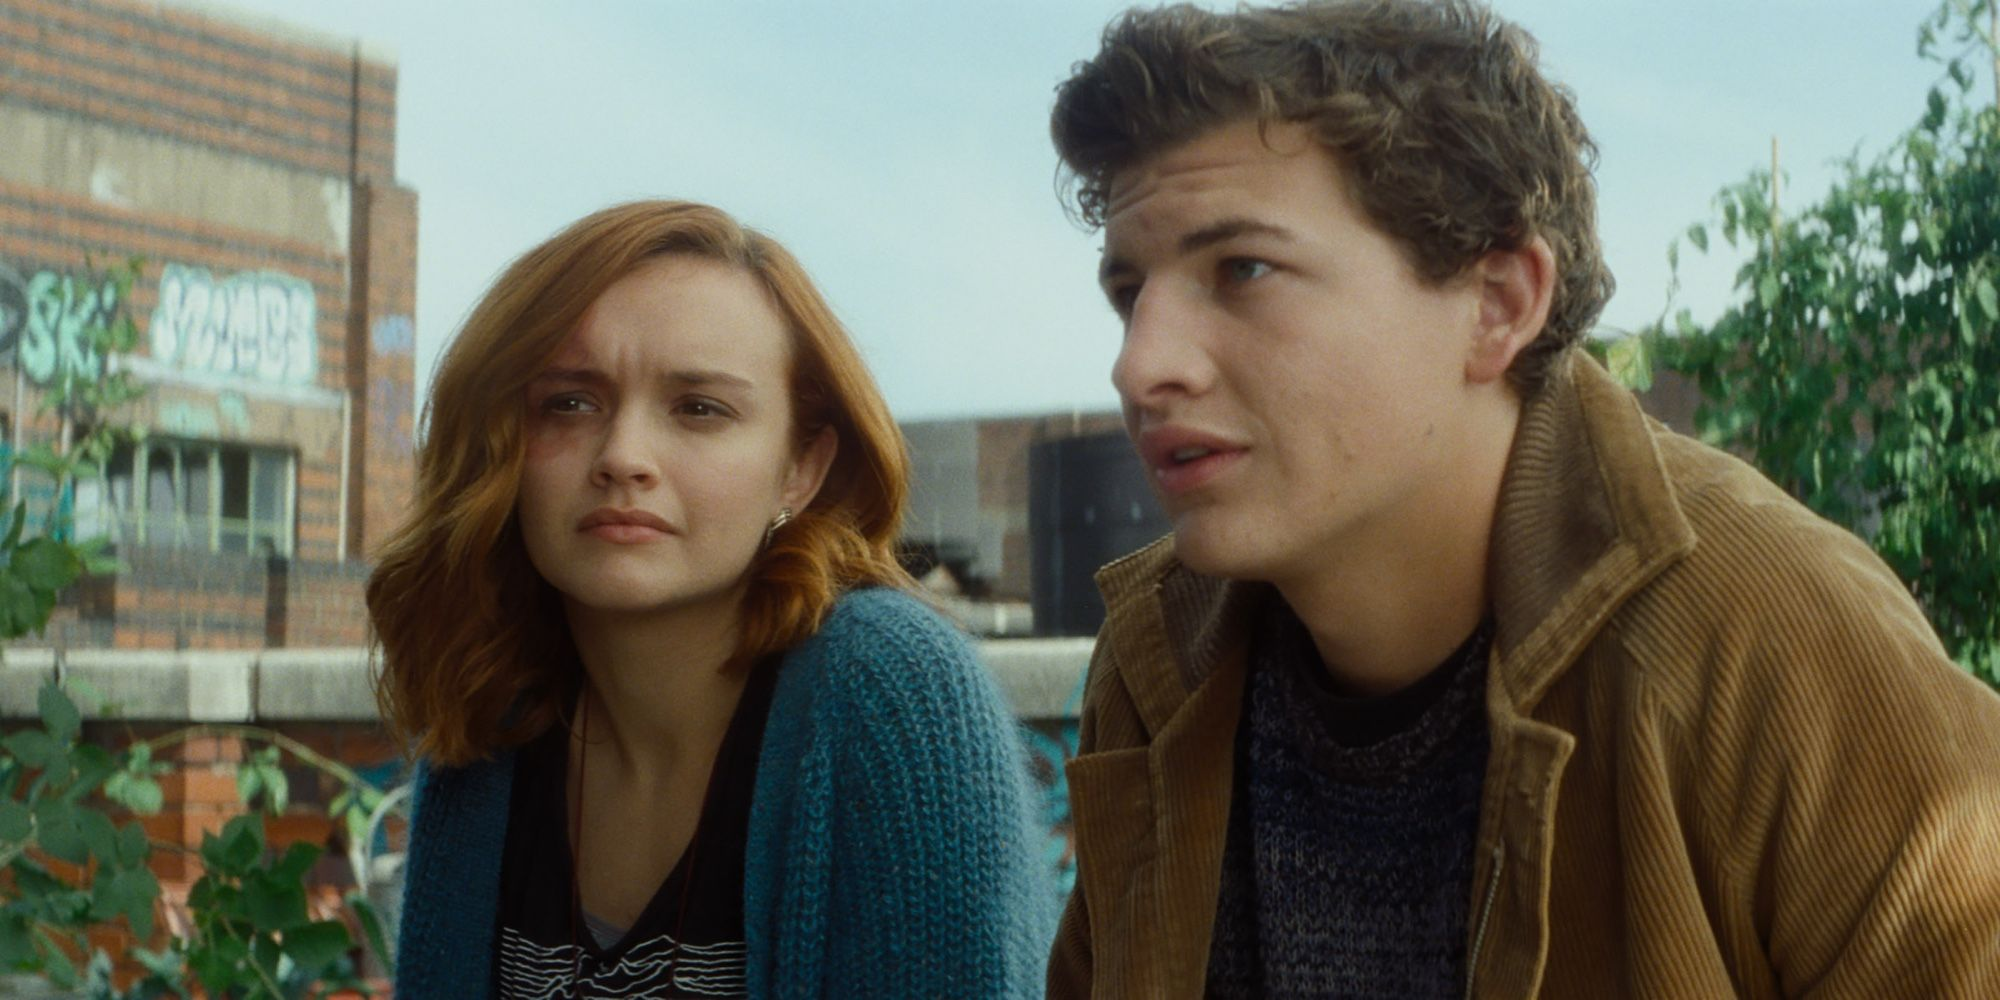 Ready Player One's Olivia Cooke Signed On For Sequels